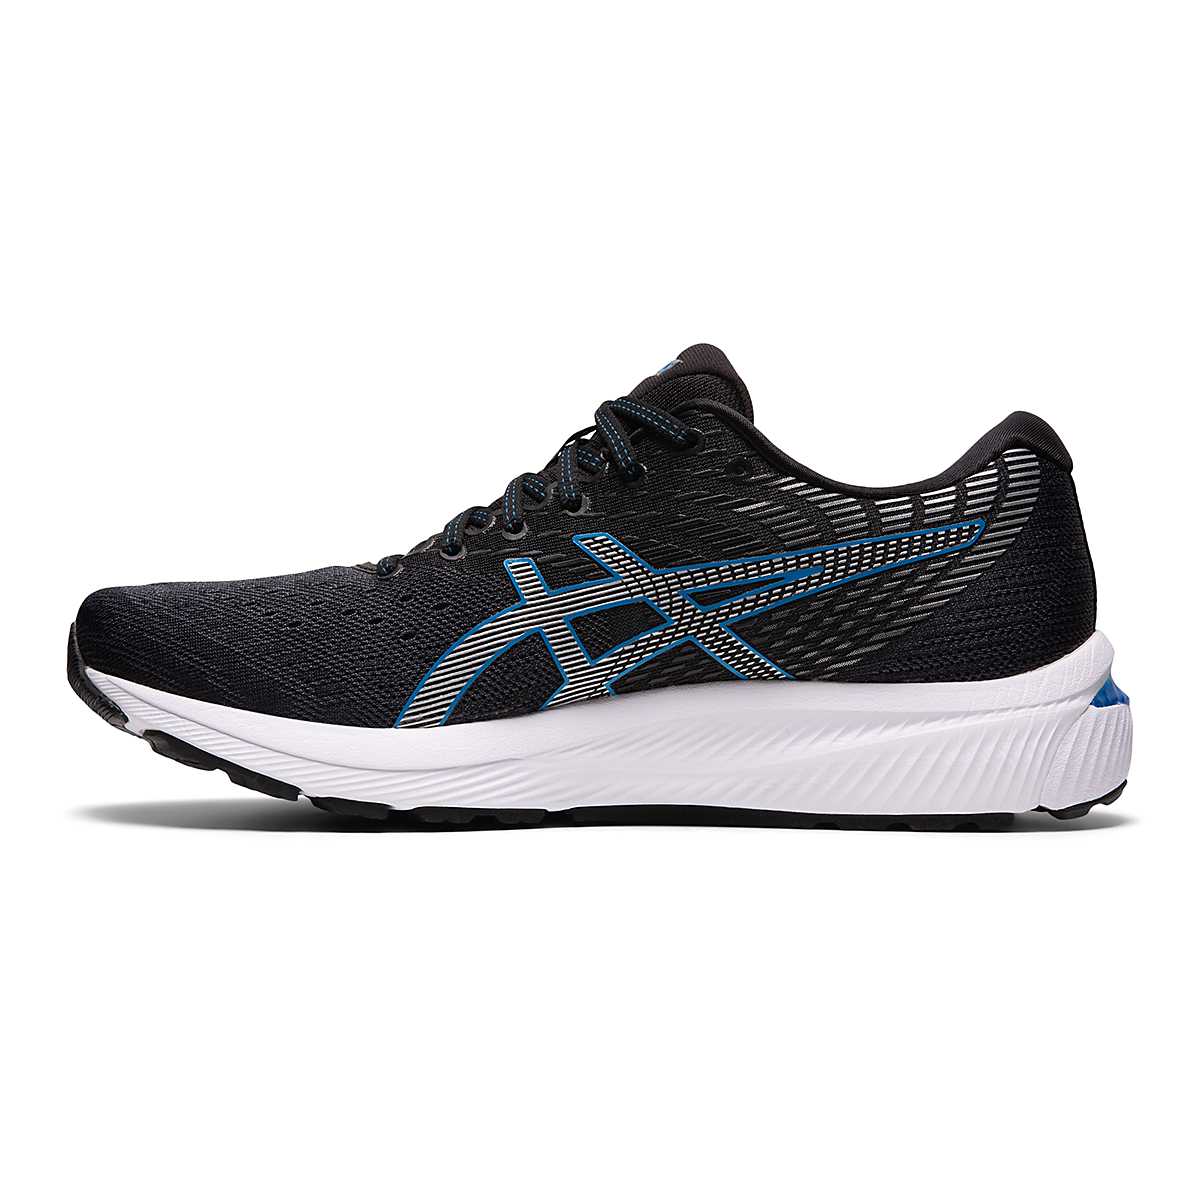 Men's Asics GEL-Cumulus 22 Running Shoe - Color: Carrier Grey/Pure Silver - Size: 7 - Width: Regular, Carrier Grey/Pure Silver, large, image 2